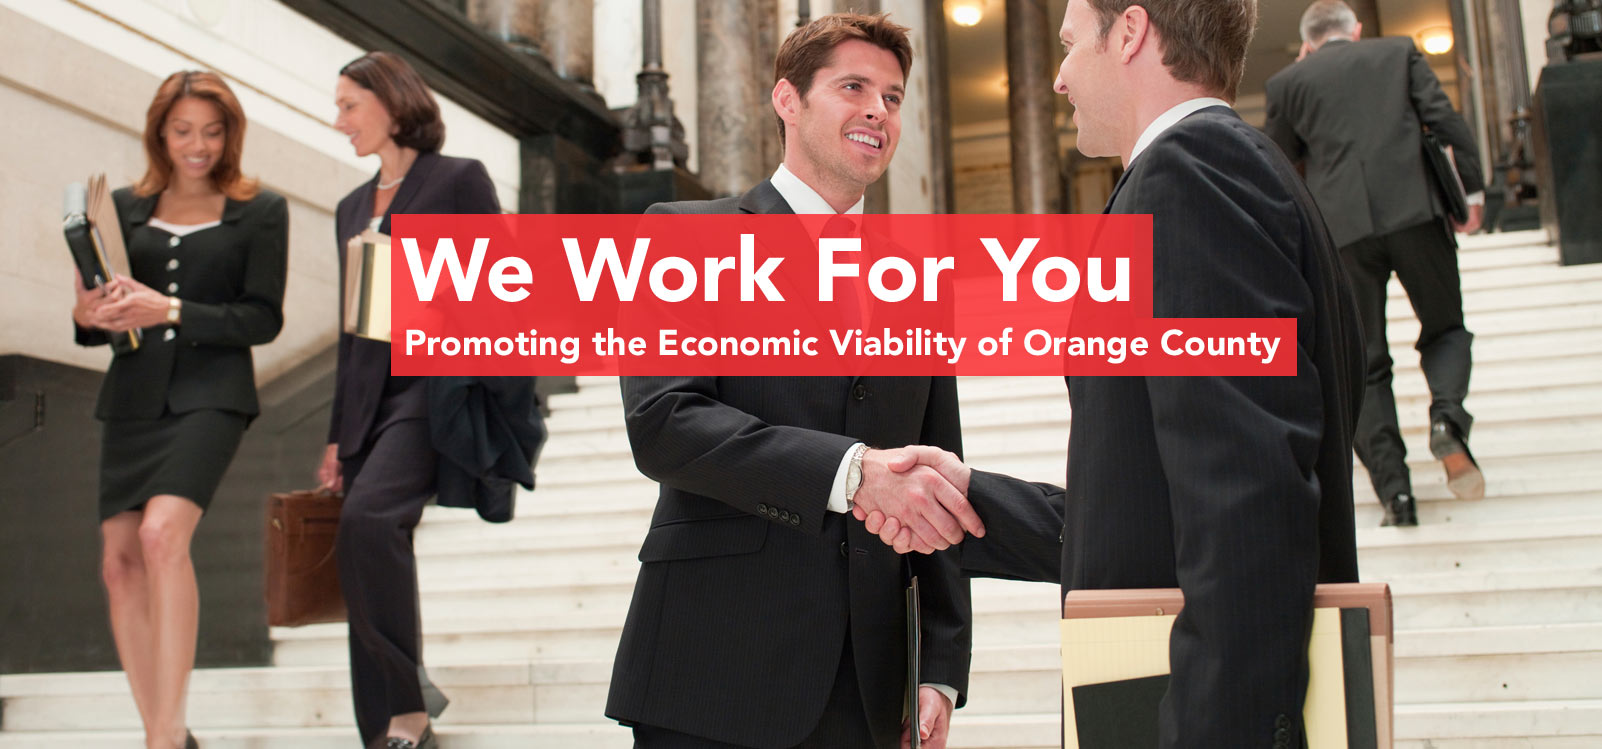 Promoting the Economic Viability of Orange County